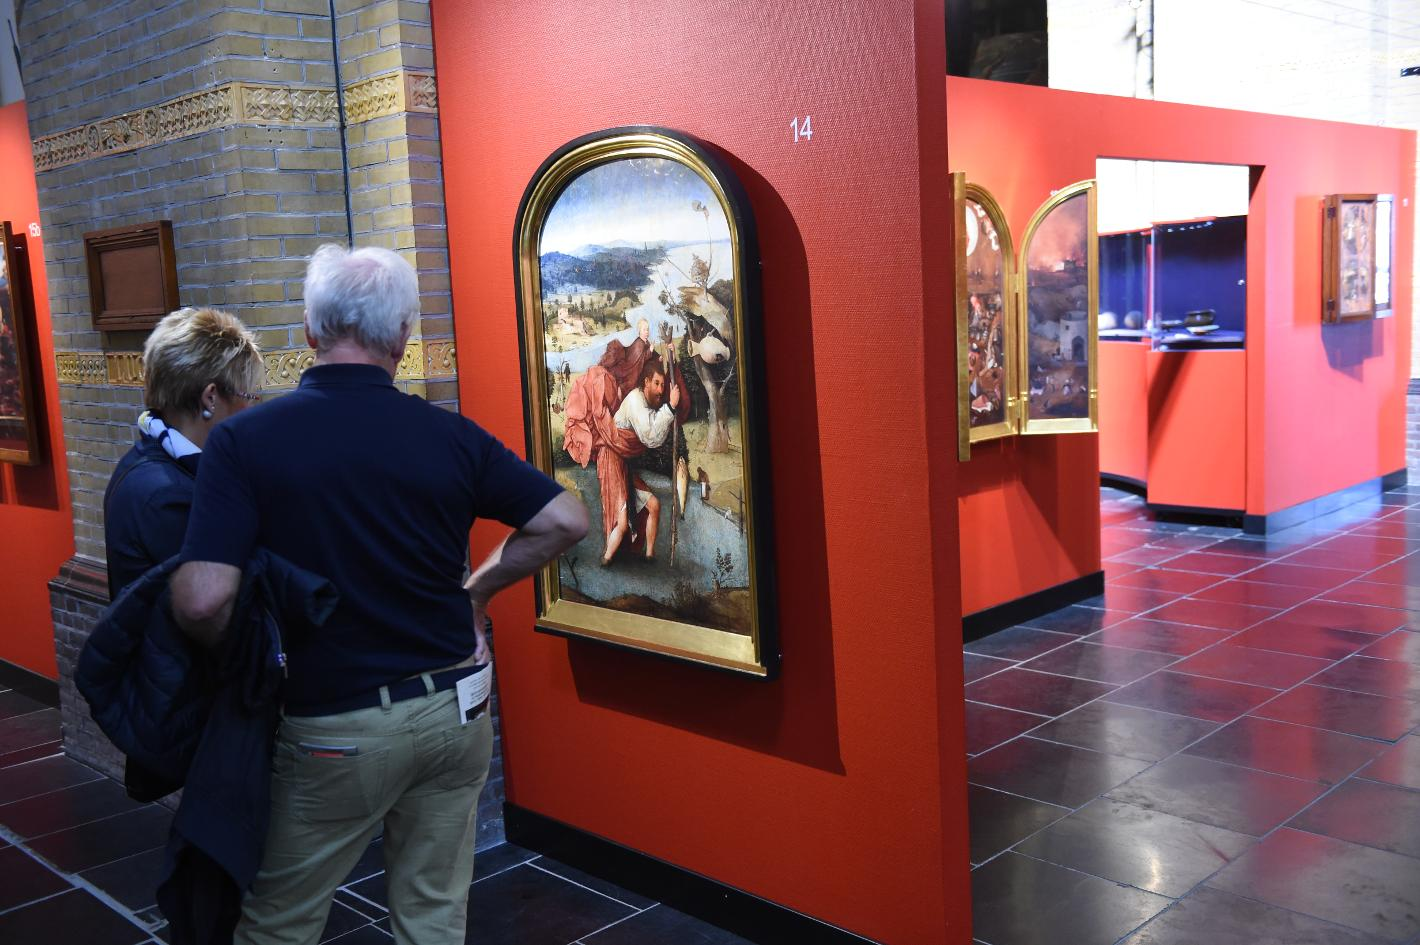 Jheronimus Bosch Art Center in Den Bosch Zien Musea & galleries, Evenementen - foto 6